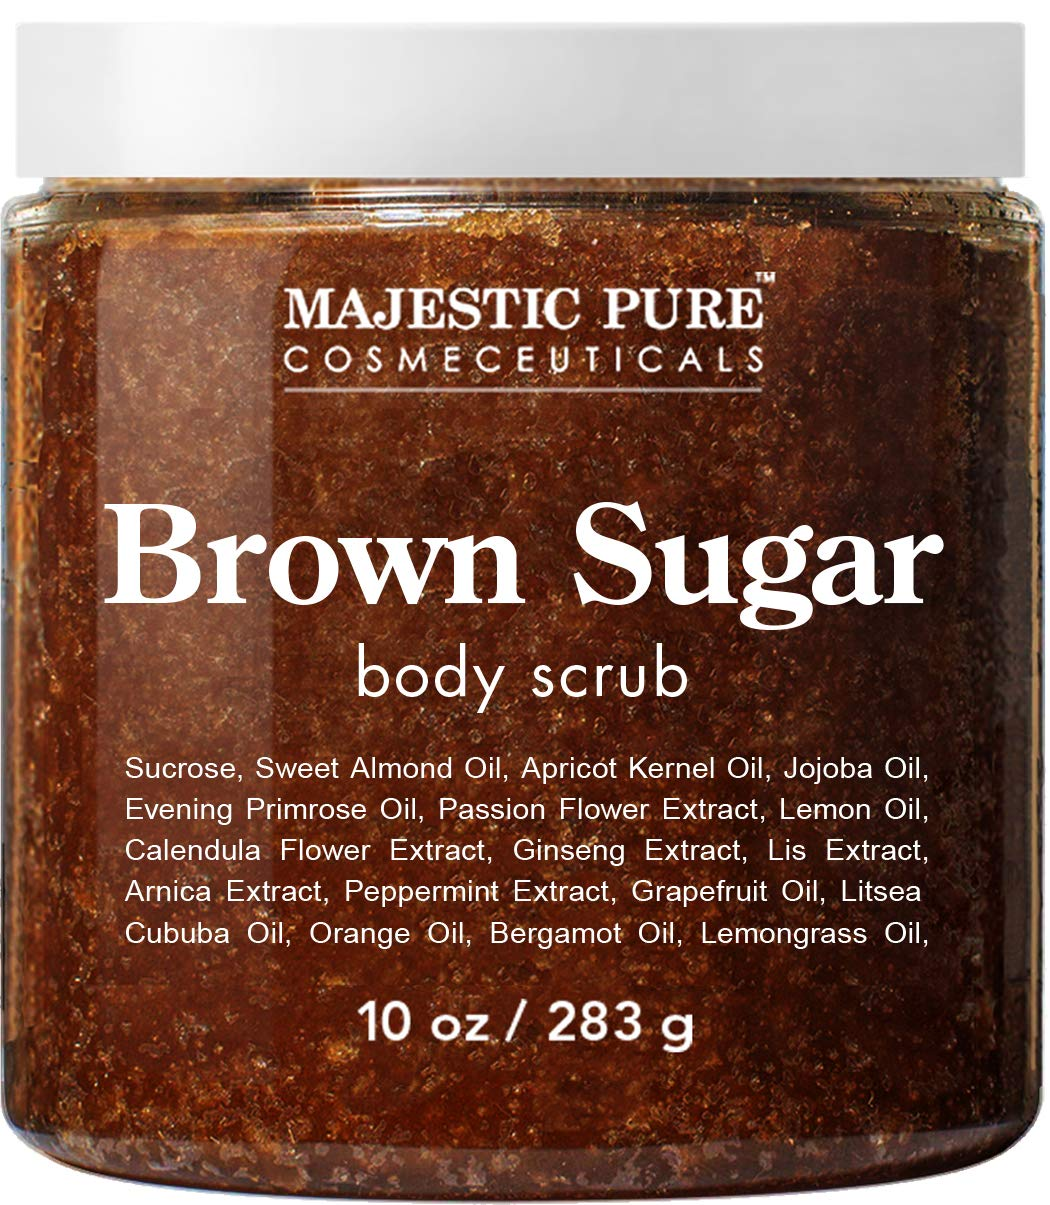 Brown Sugar Body Scrub for Cellulite and Exfoliation - Natural Body Scrub - Reduces The Appearances of Cellulite, Stretch Marks, Acne, and Varicose Veins, 10 Ounces by Majestic Pure